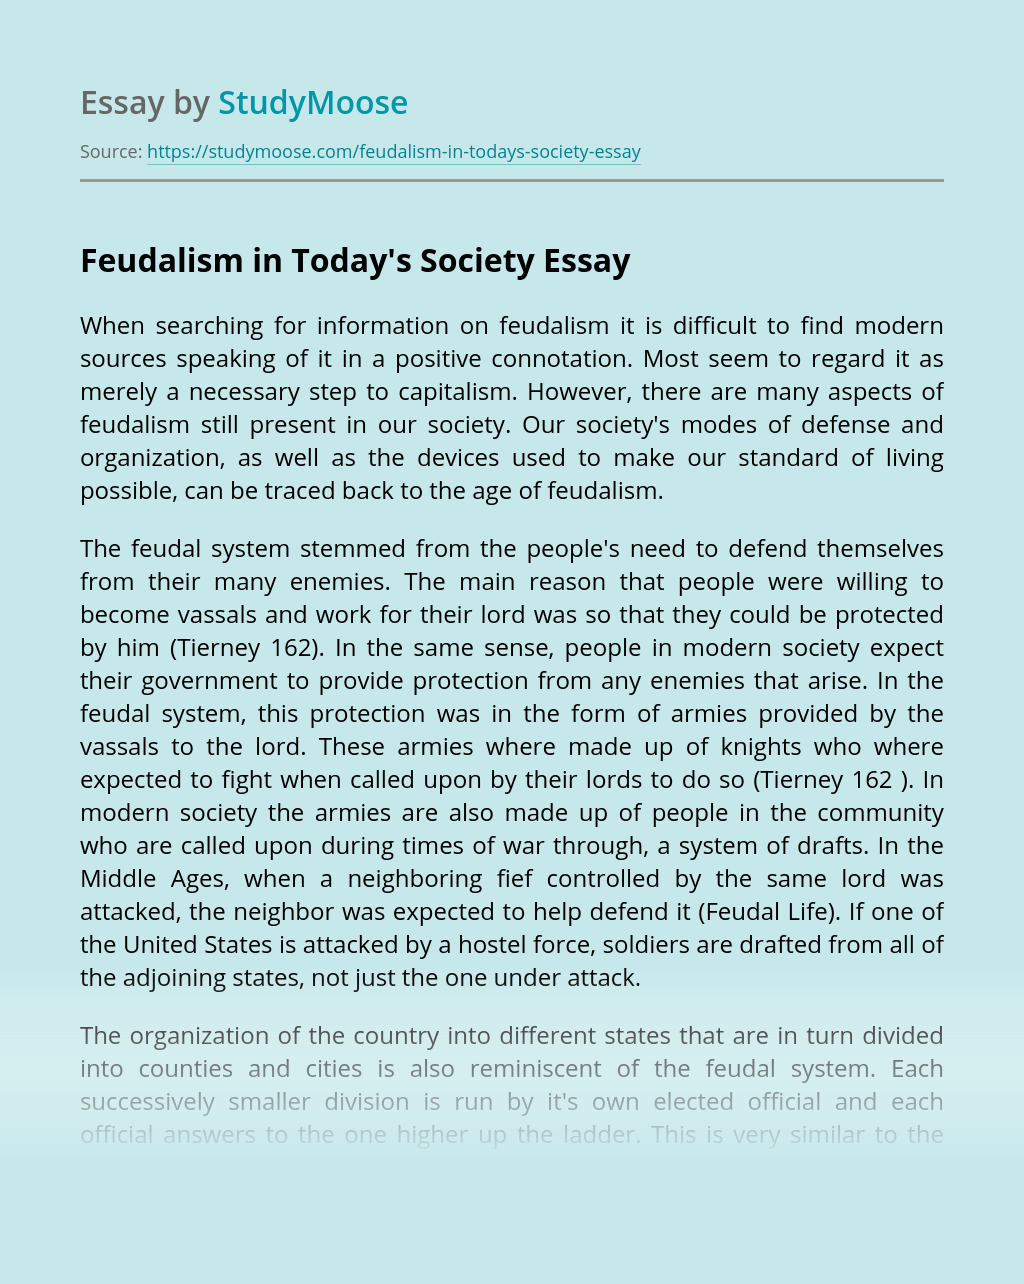 Feudalism in Today's Society